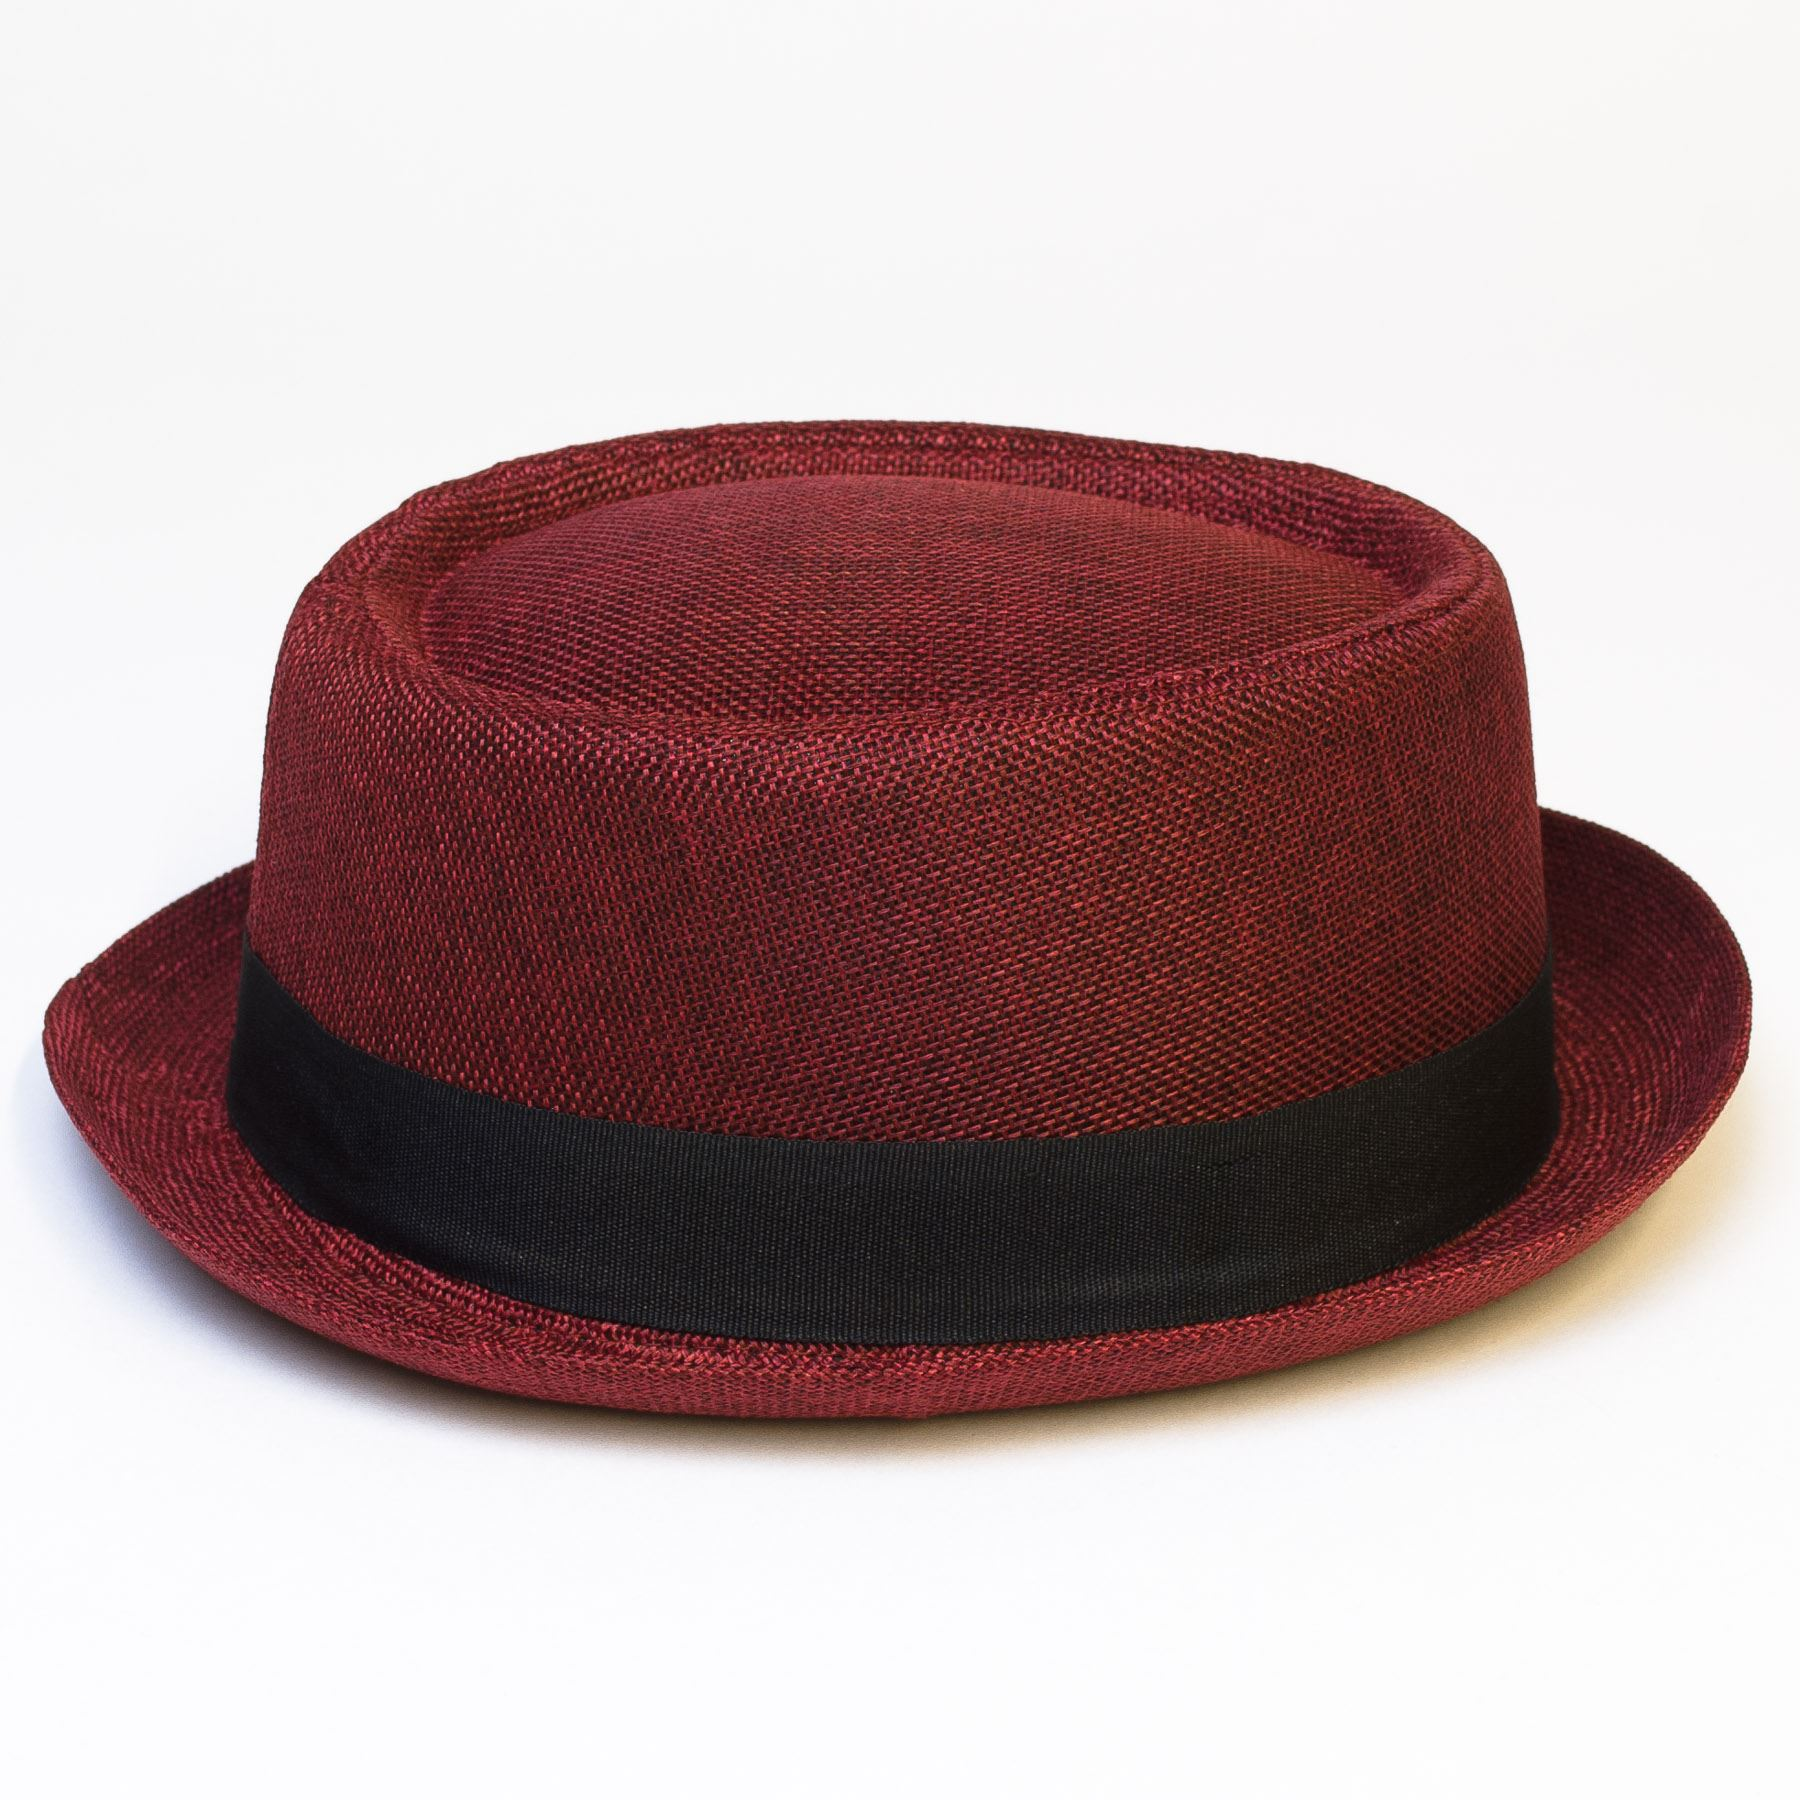 Pork-Pie-Hat-with-Black-Grosgrain-Band thumbnail 24